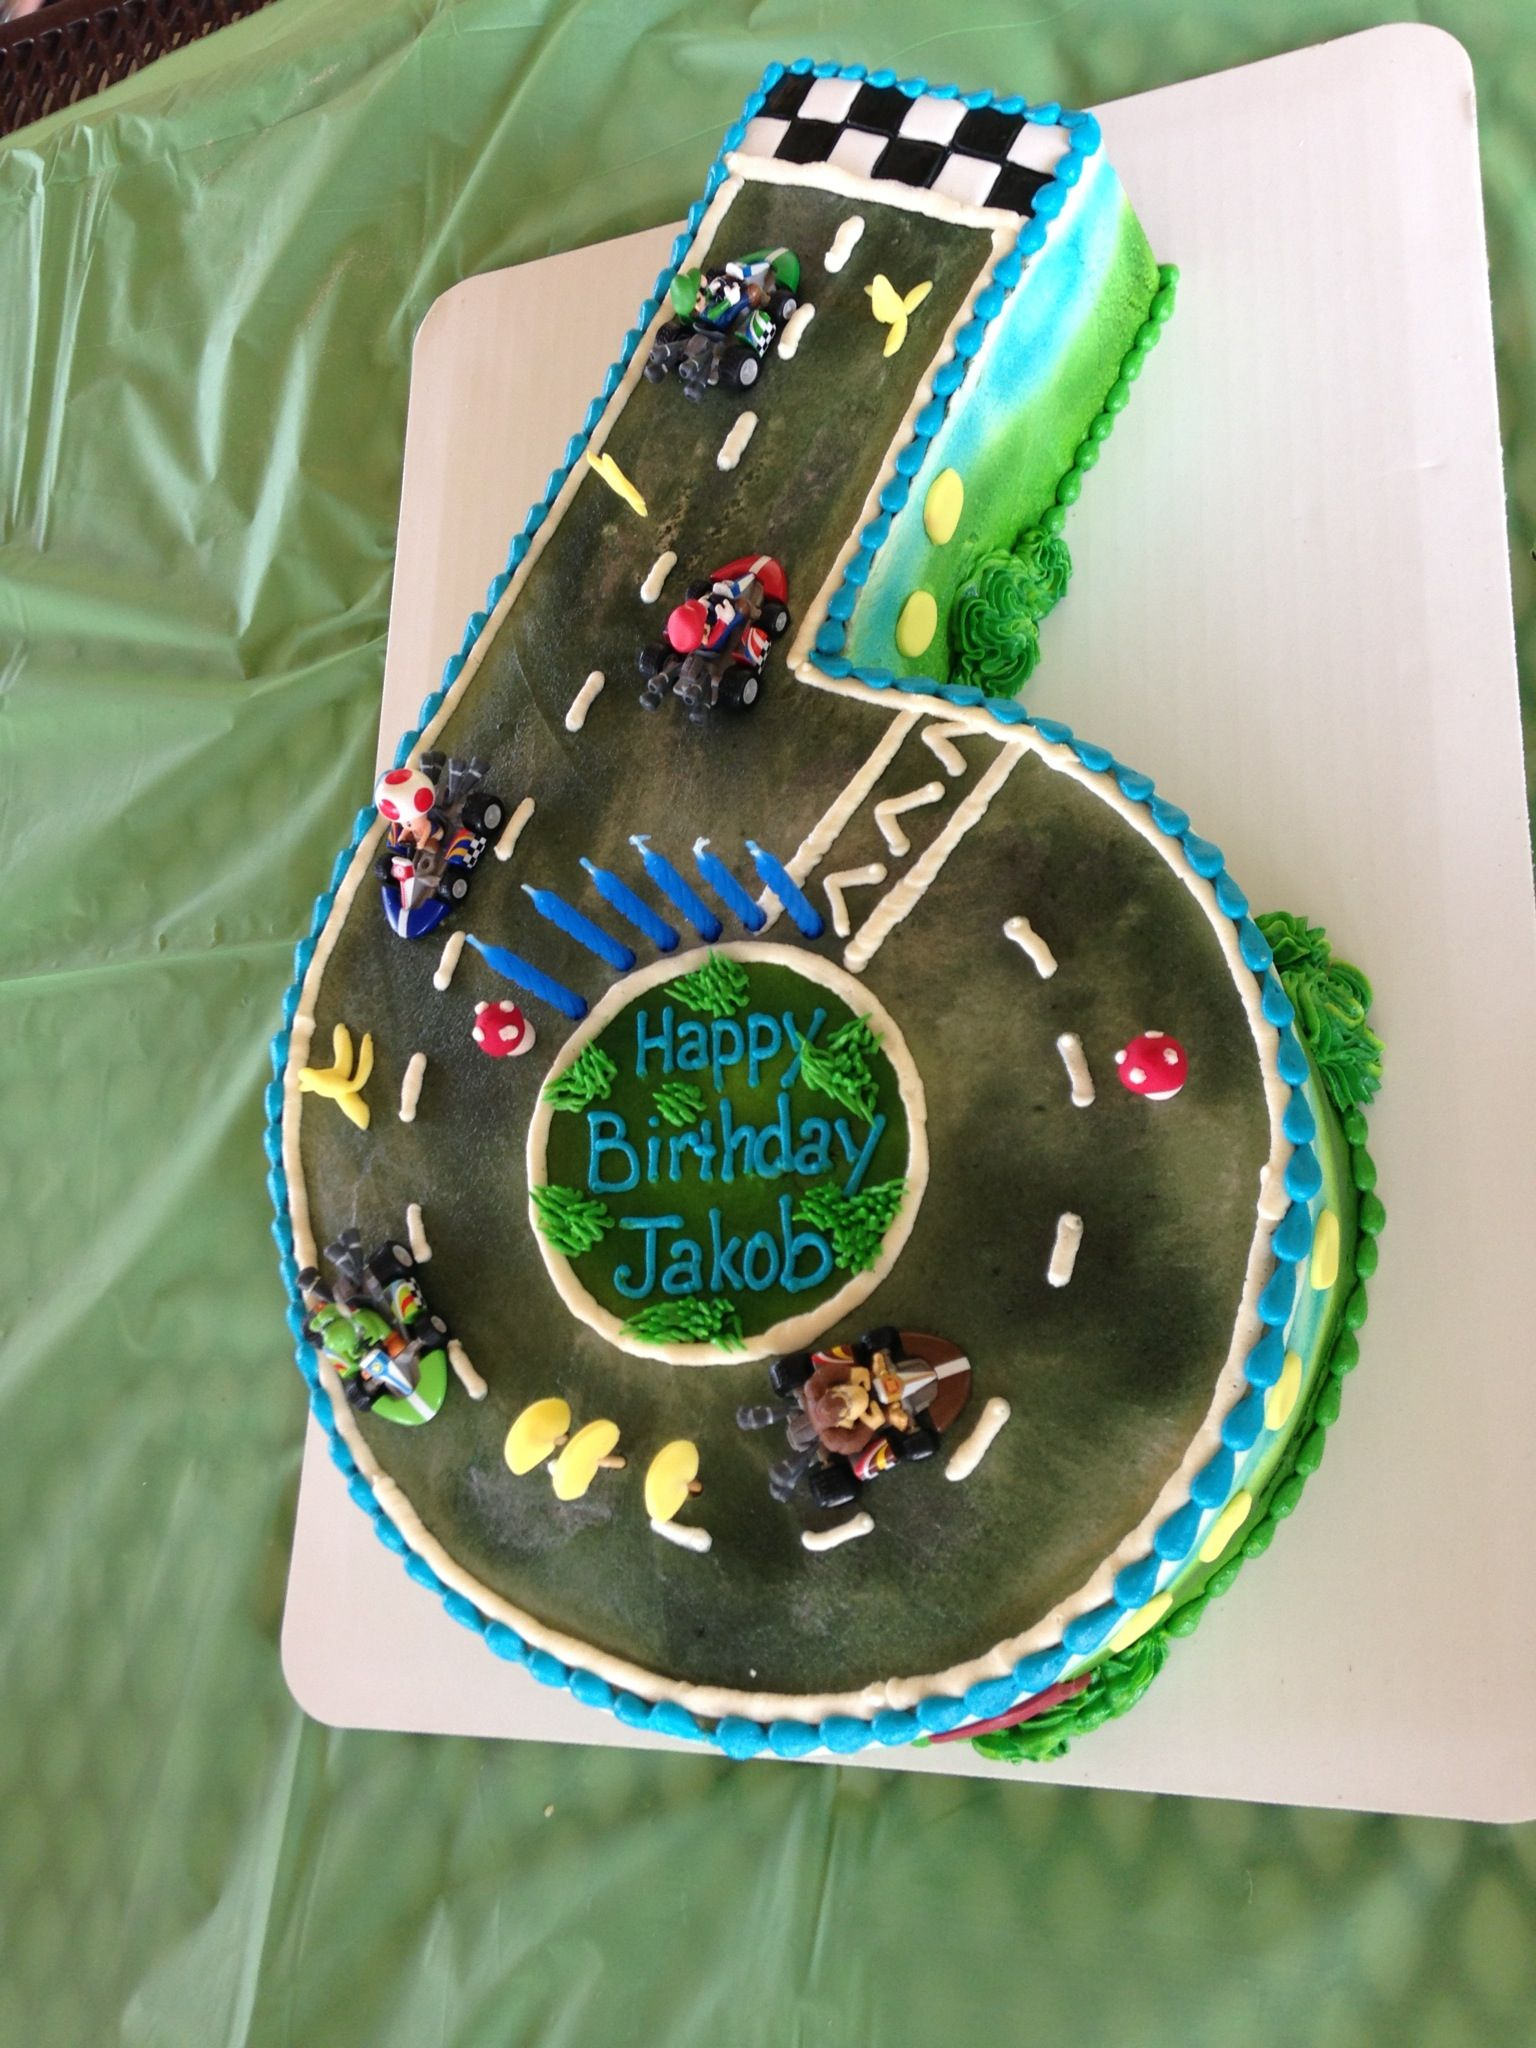 Mario Kart Cake 6 With Images Mario Birthday Cake Mario Kart